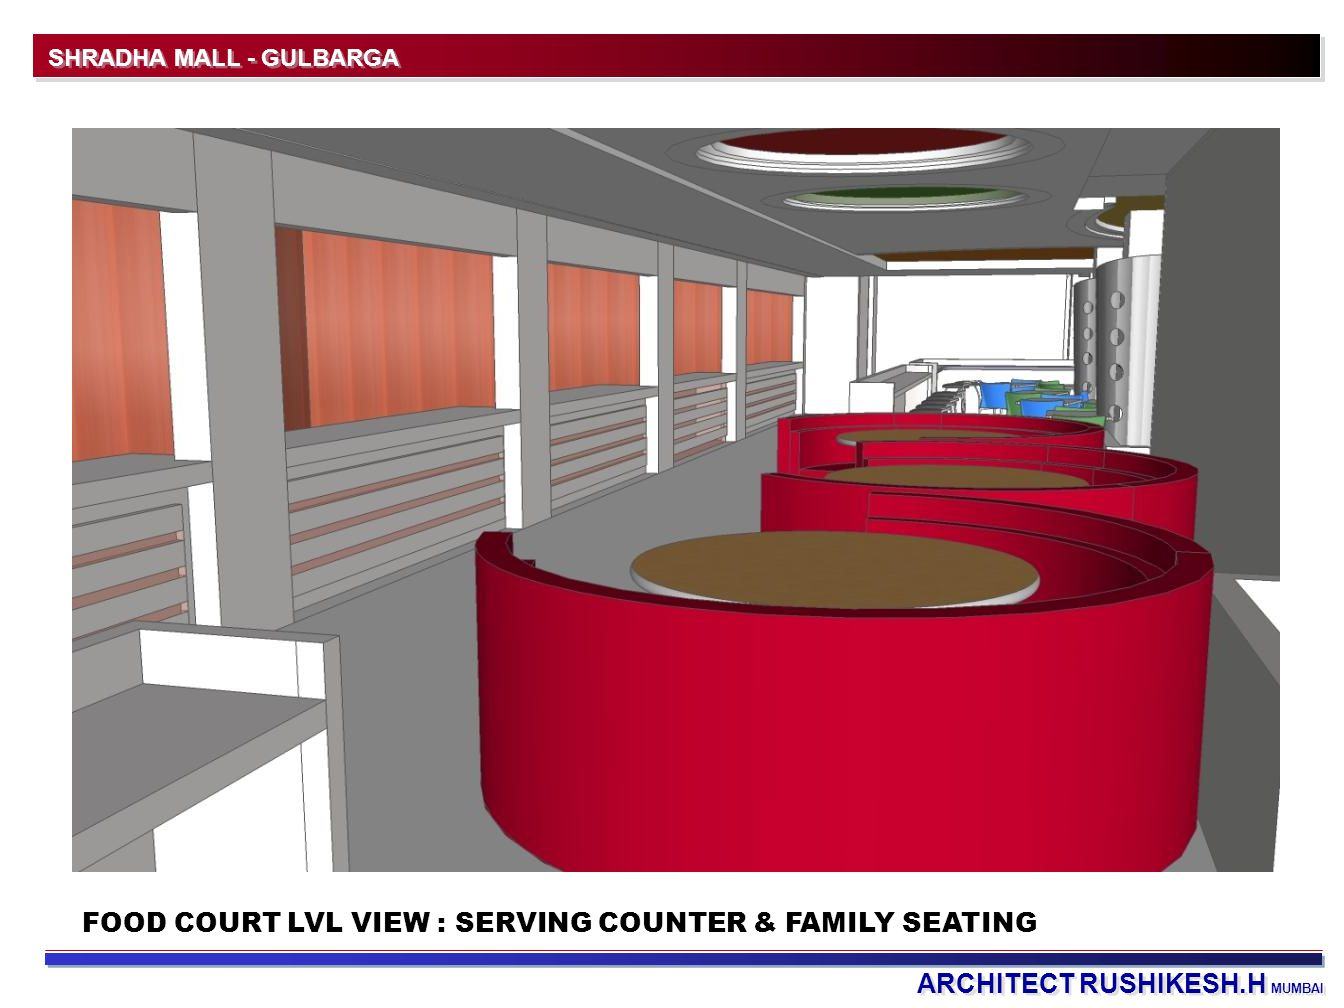 FOOD COURT LVL VIEW : SERVING COUNTER & FAMILY SEATING